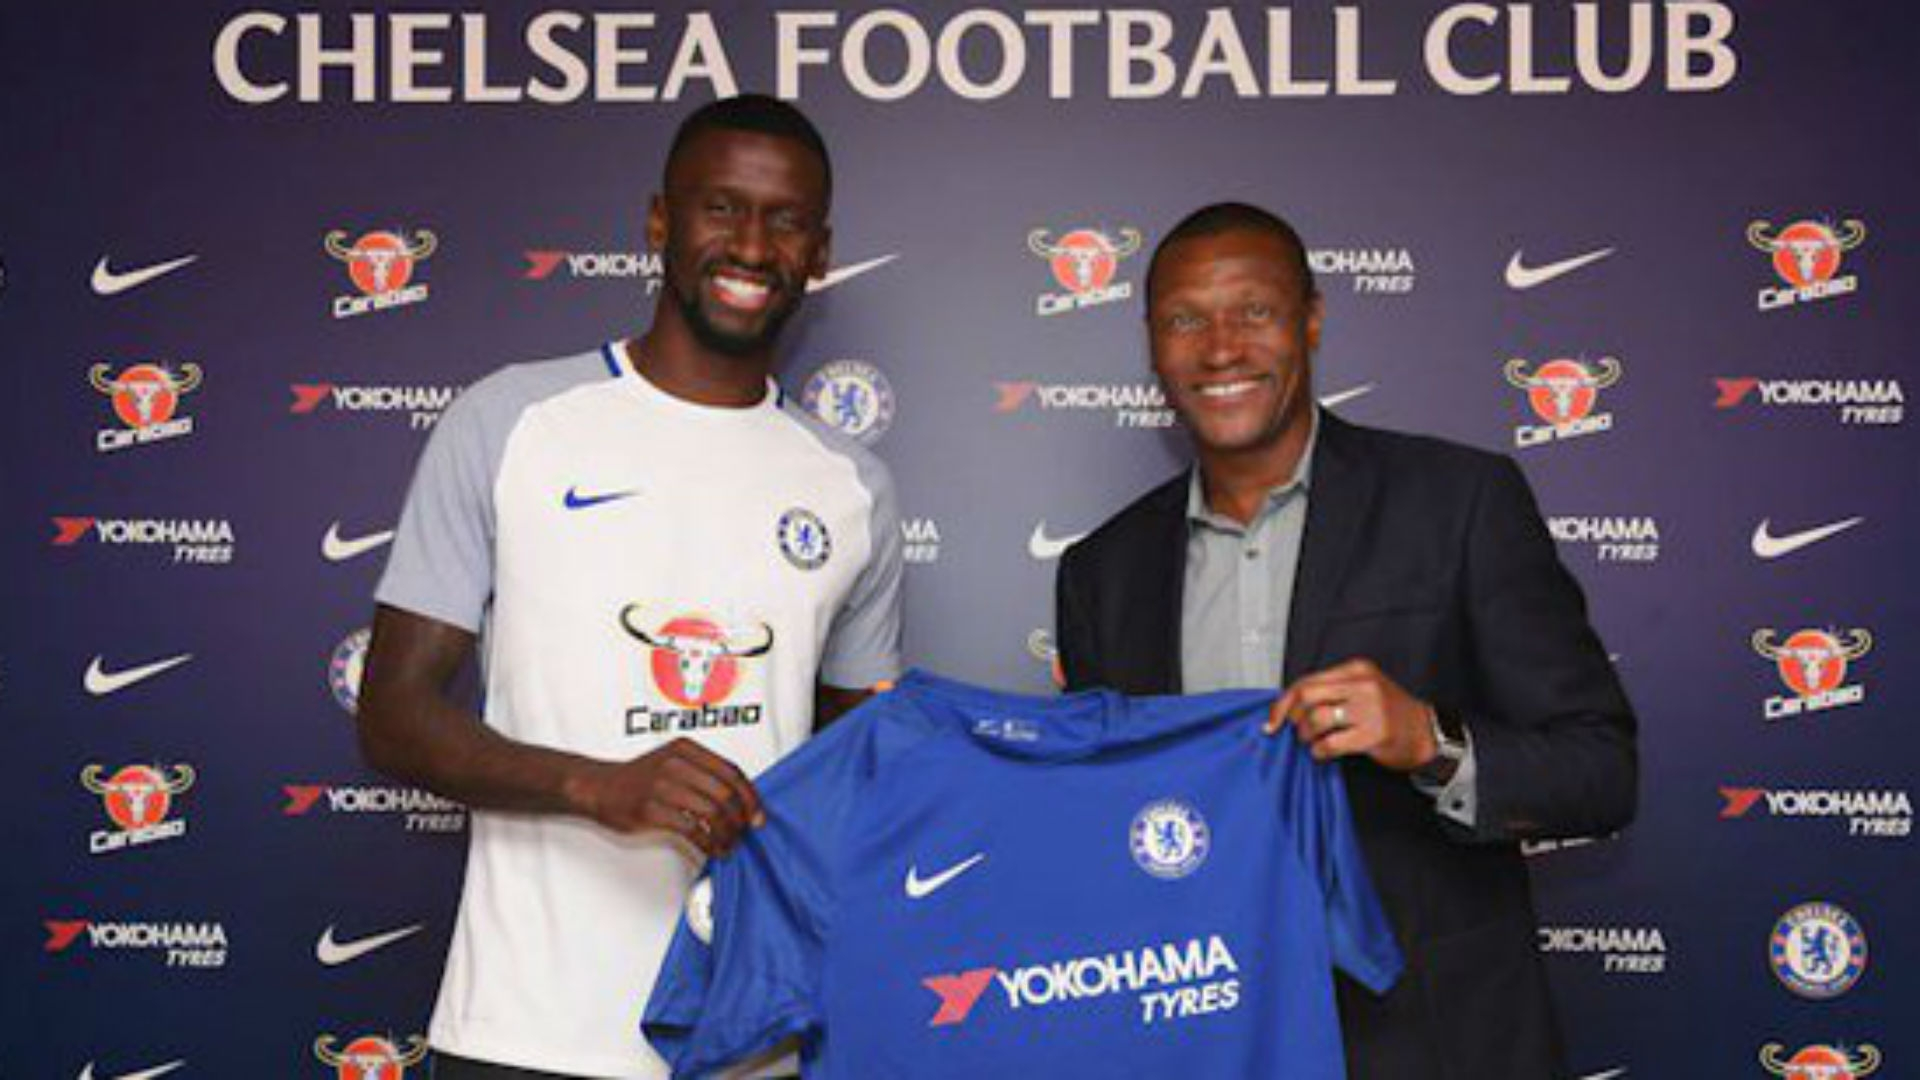 It will be interesting to see how Rudiger fares in the Premier League, a competition where teams with good defensive discipline have thrived in recent years.